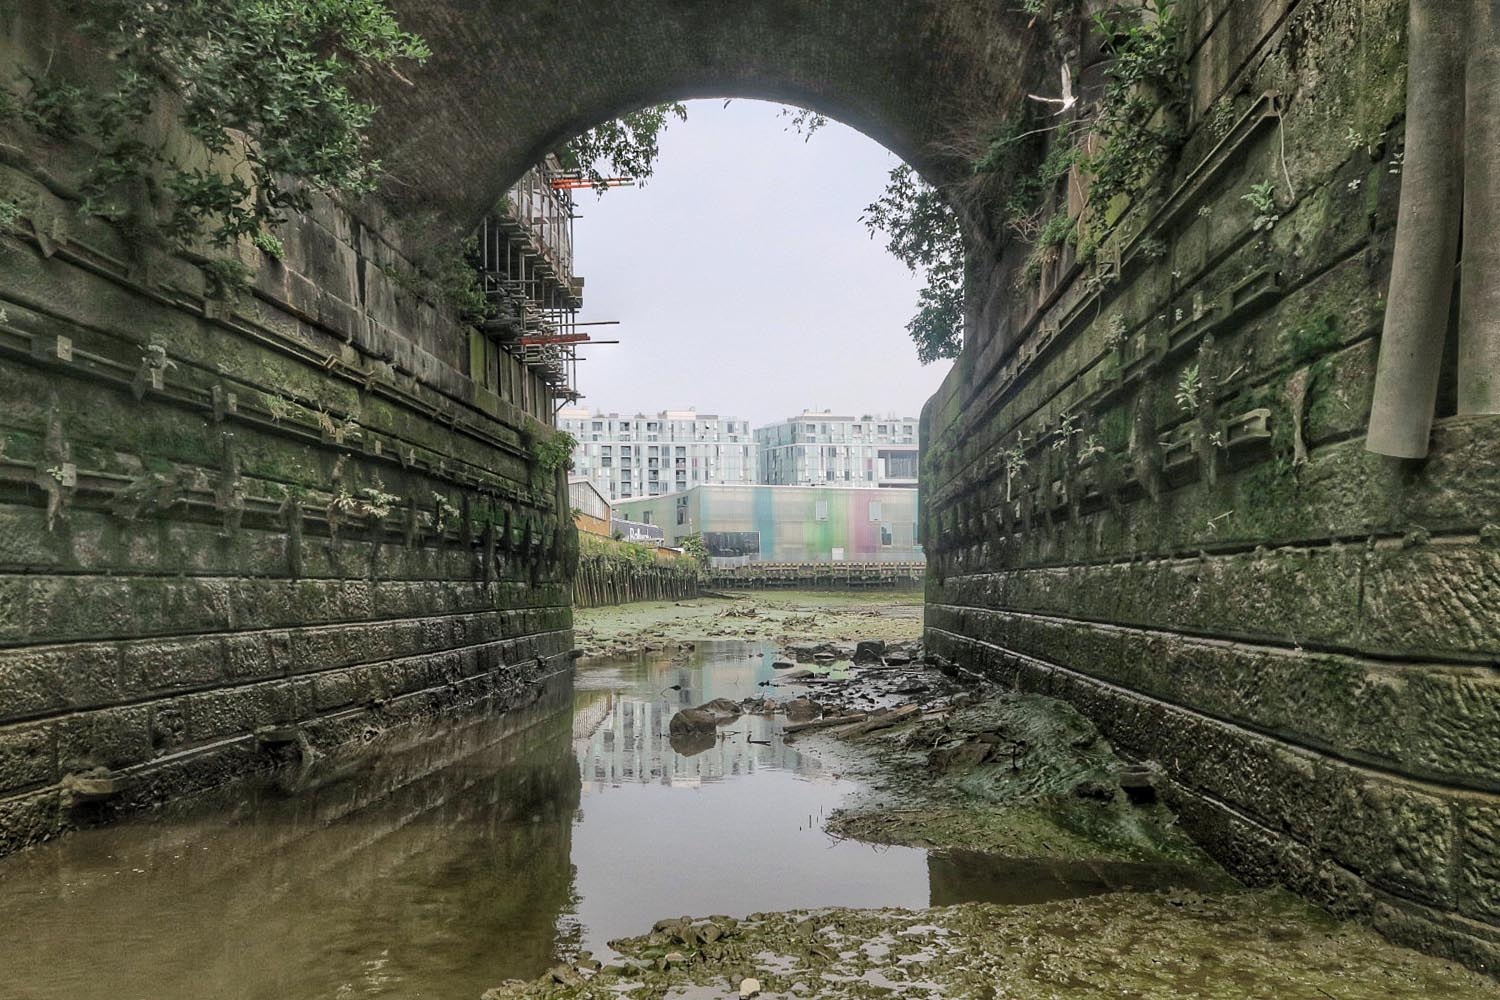 Twice a month, the Creekside Education Fund open their doors to those interested in exploring Deptford Creek during low tide, in all its muddy glory.